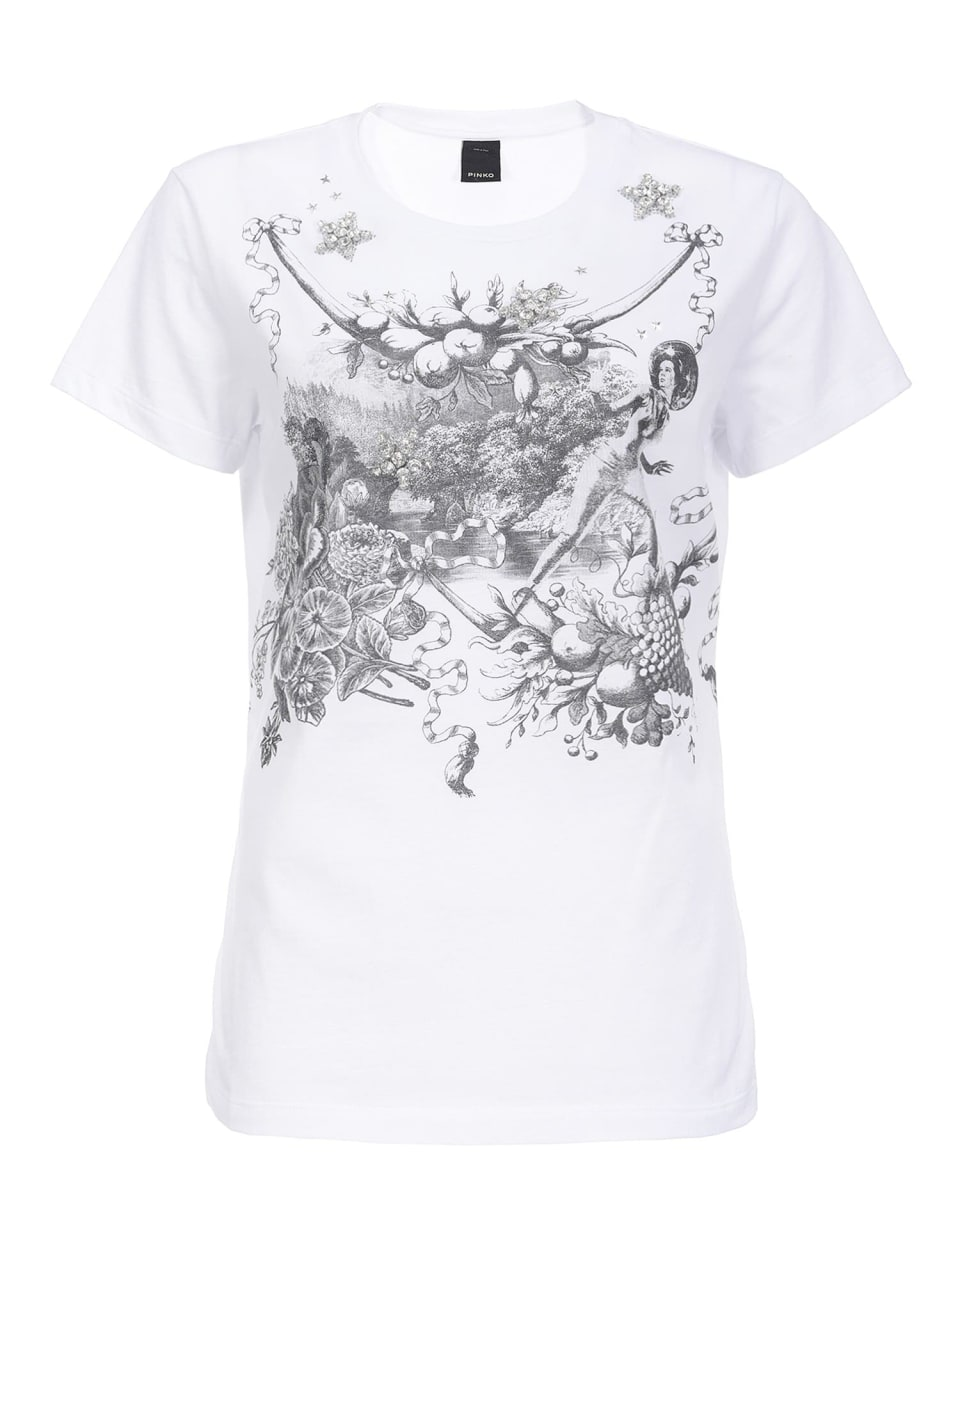 T-shirt with Toile de Jouy Space print